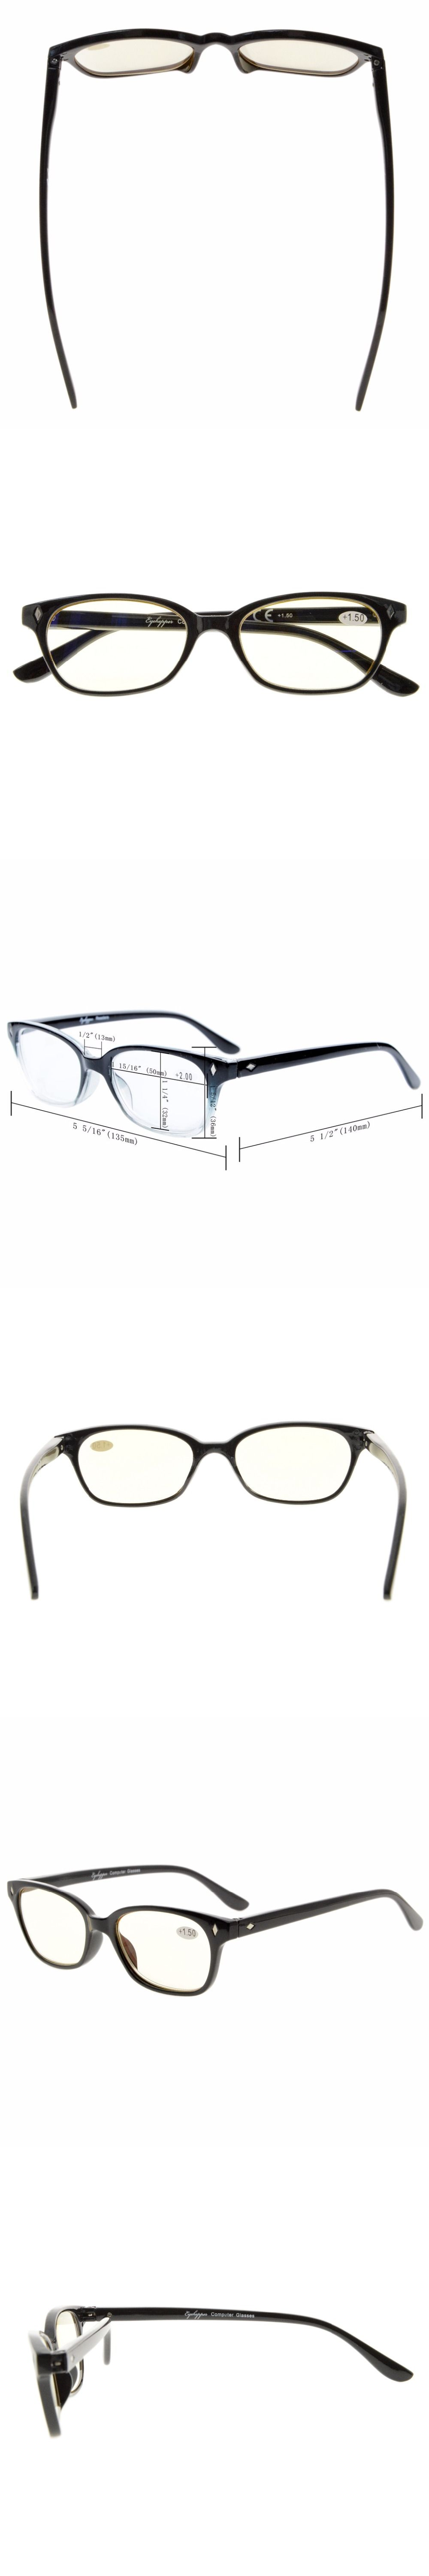 e485bc8262e CG068 Eyekepper Vintage Plastic Frame Spring Hinges Computer Reading  Glasses Readers Eyeglasses Yellow Lens